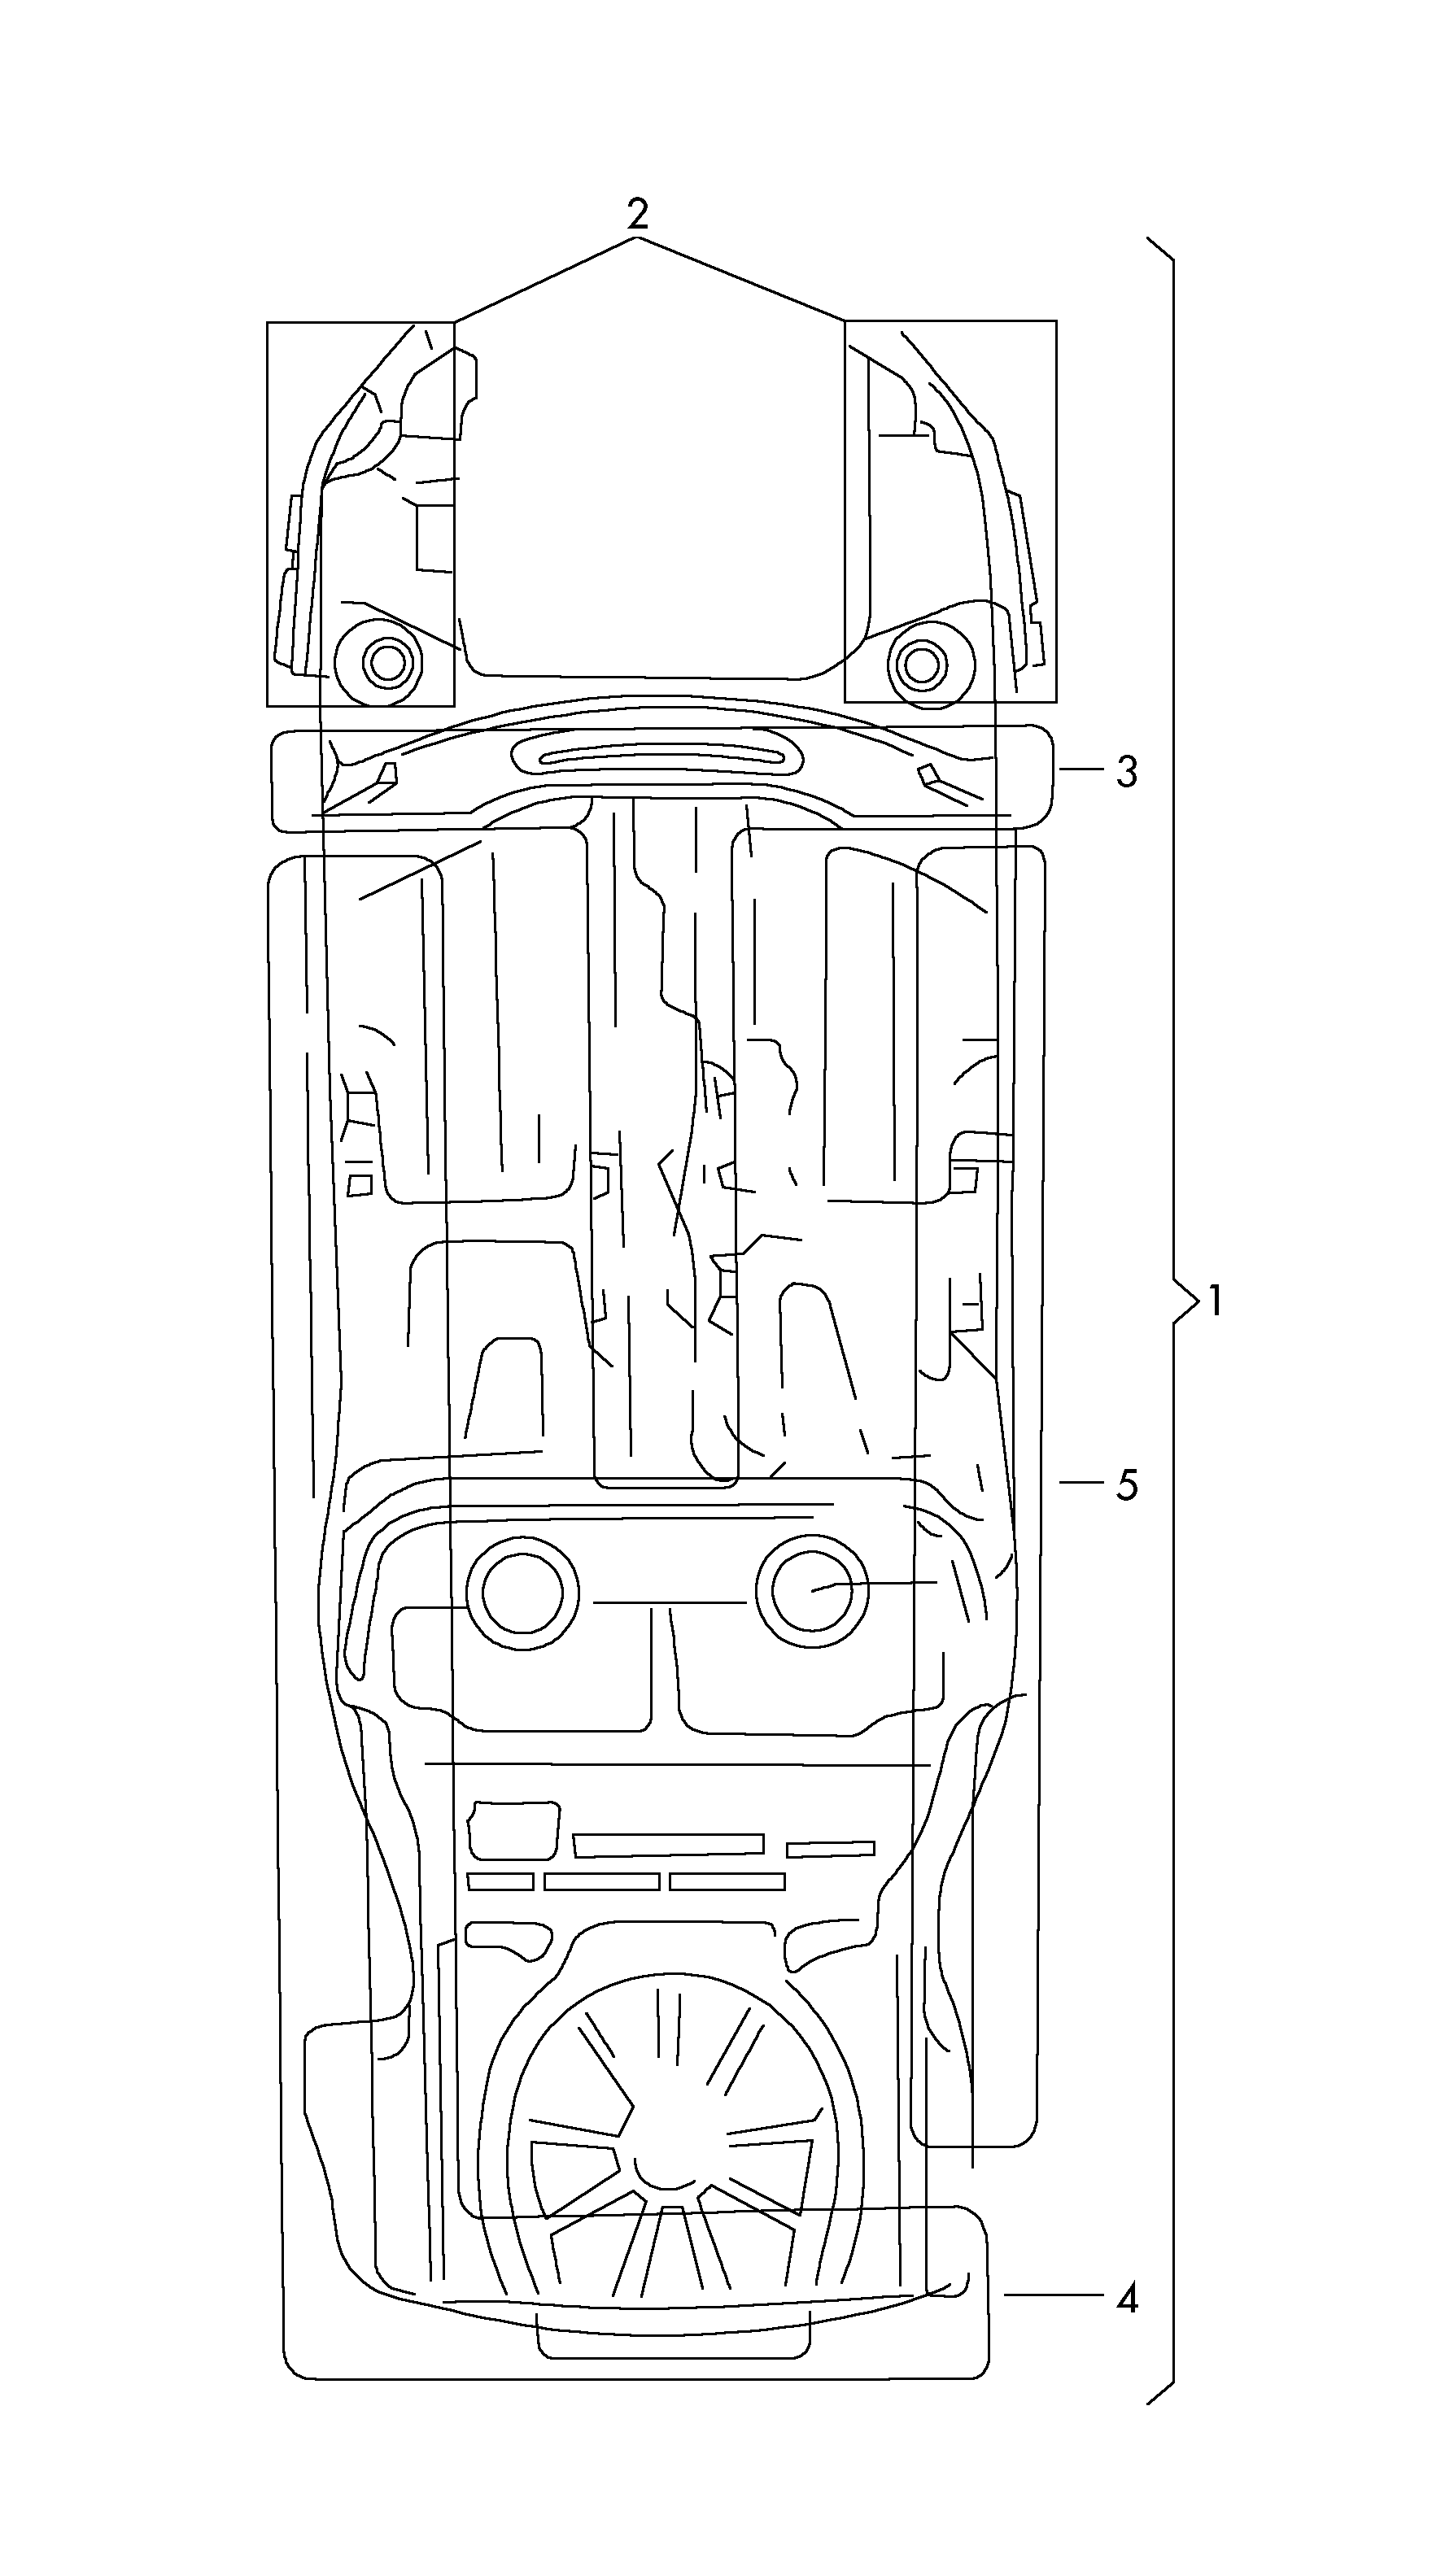 [WRG-0526] Skoda Fabia Central Locking Wiring Diagram